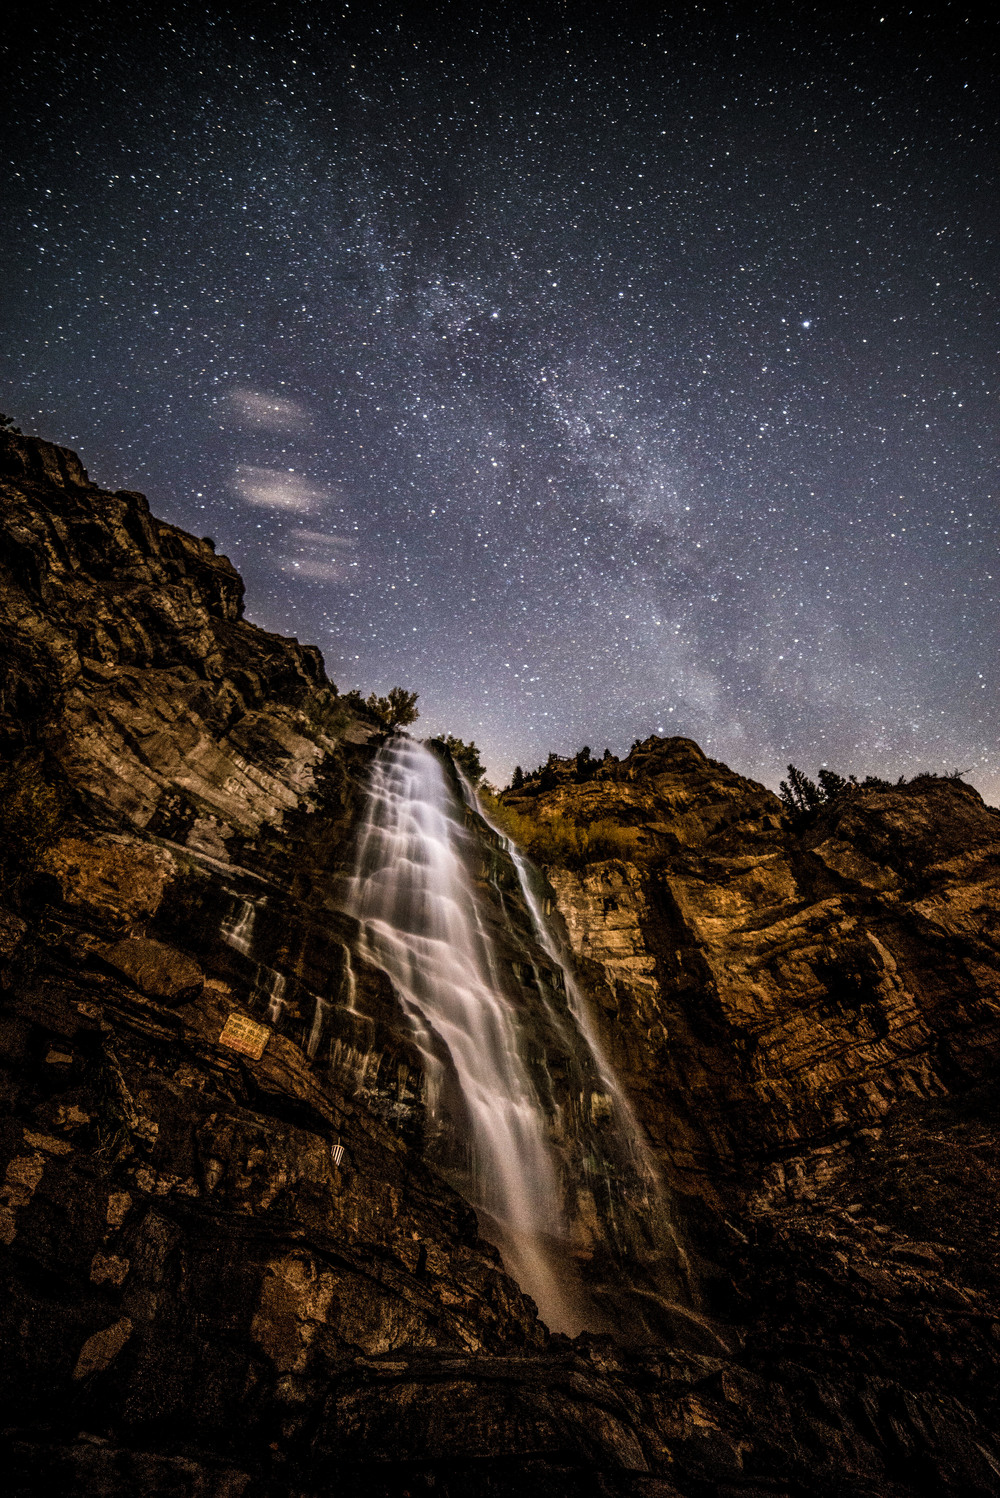 waterfall night sky stars kasey crook thisworldexists